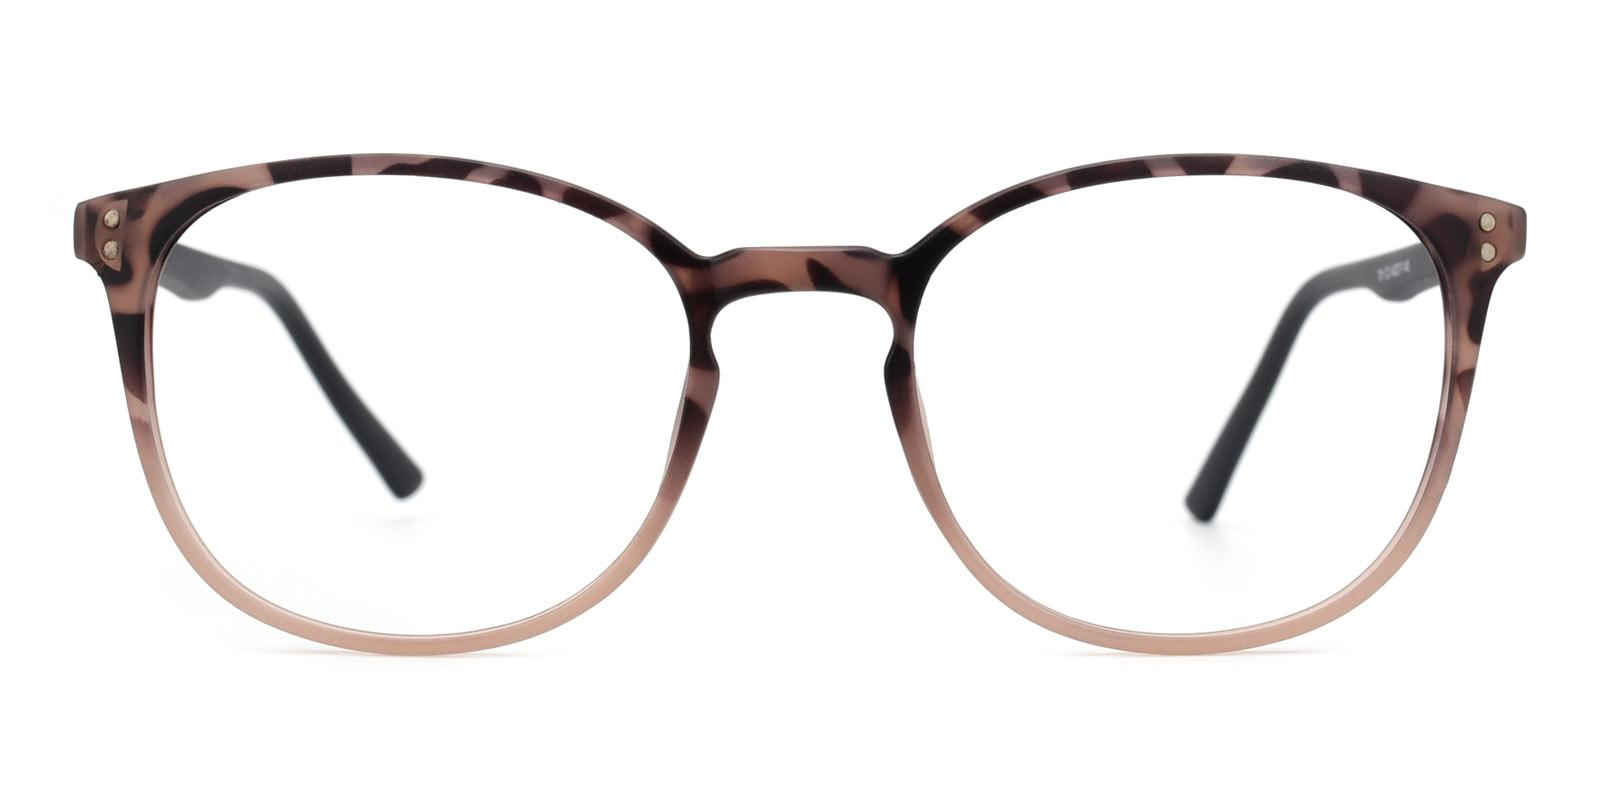 Ignore-Tortoise-Rectangle-TR-Eyeglasses-detail